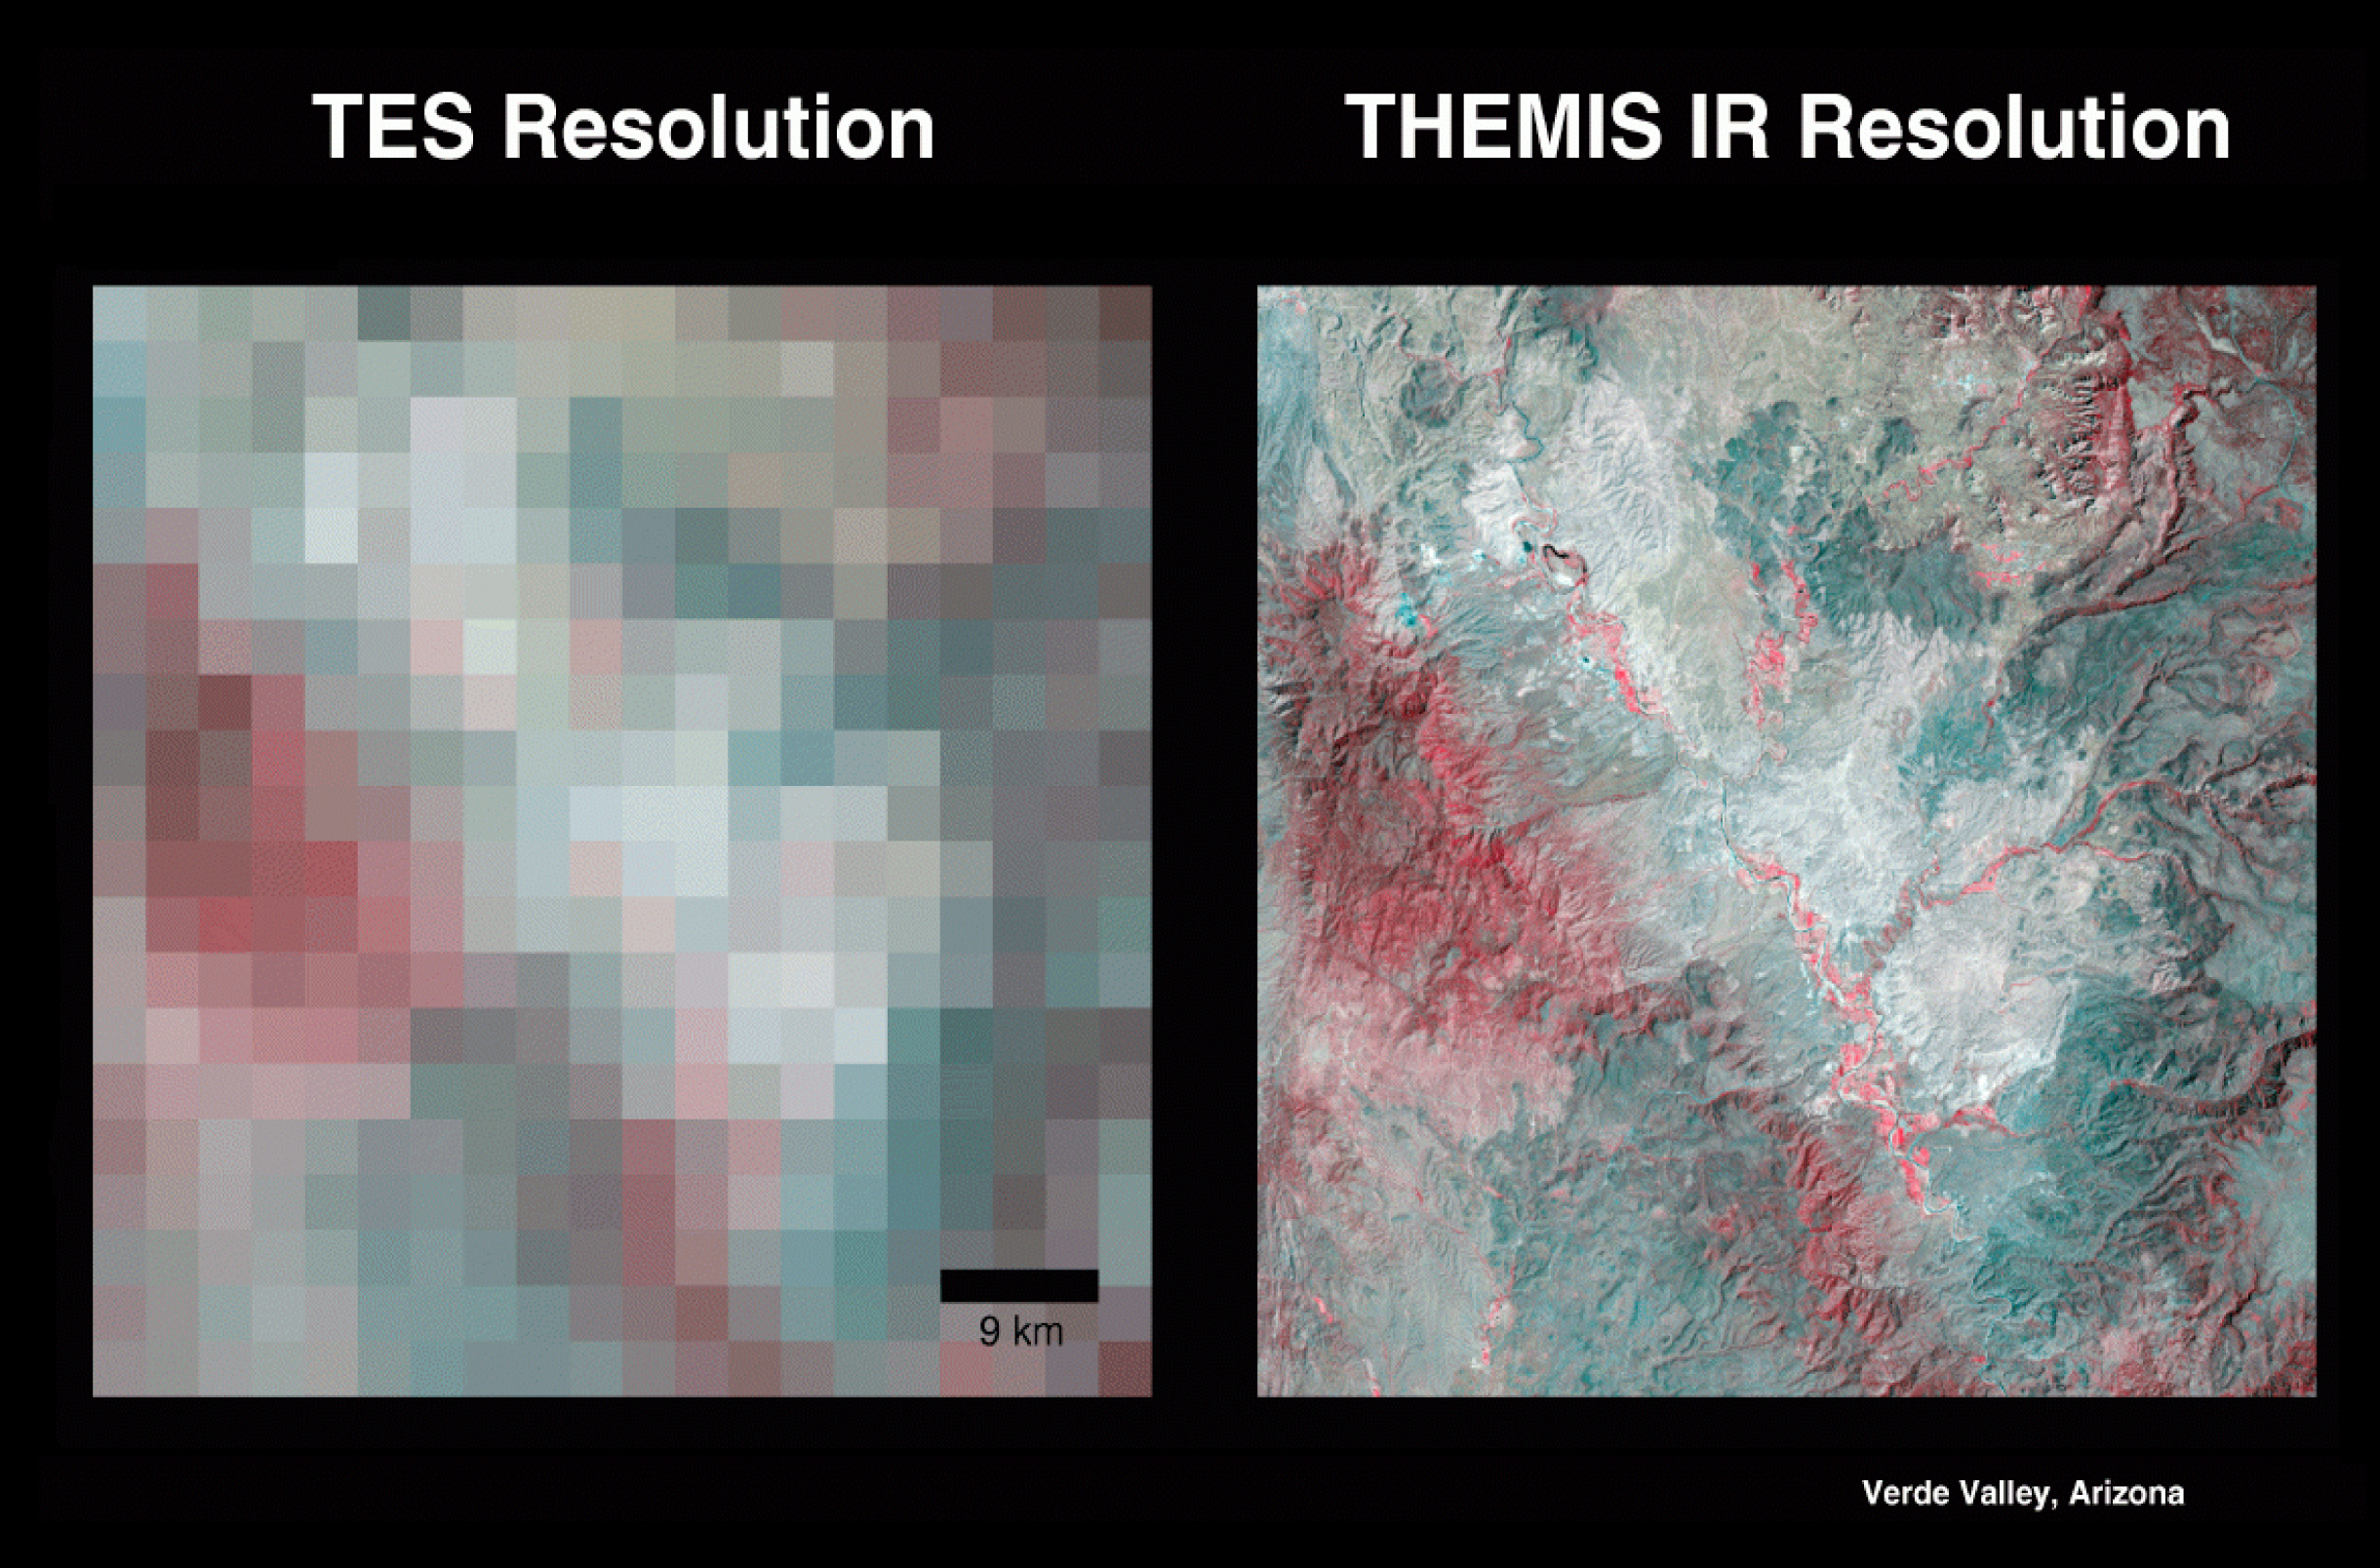 TES Resolution compared to THEMIS Resolution